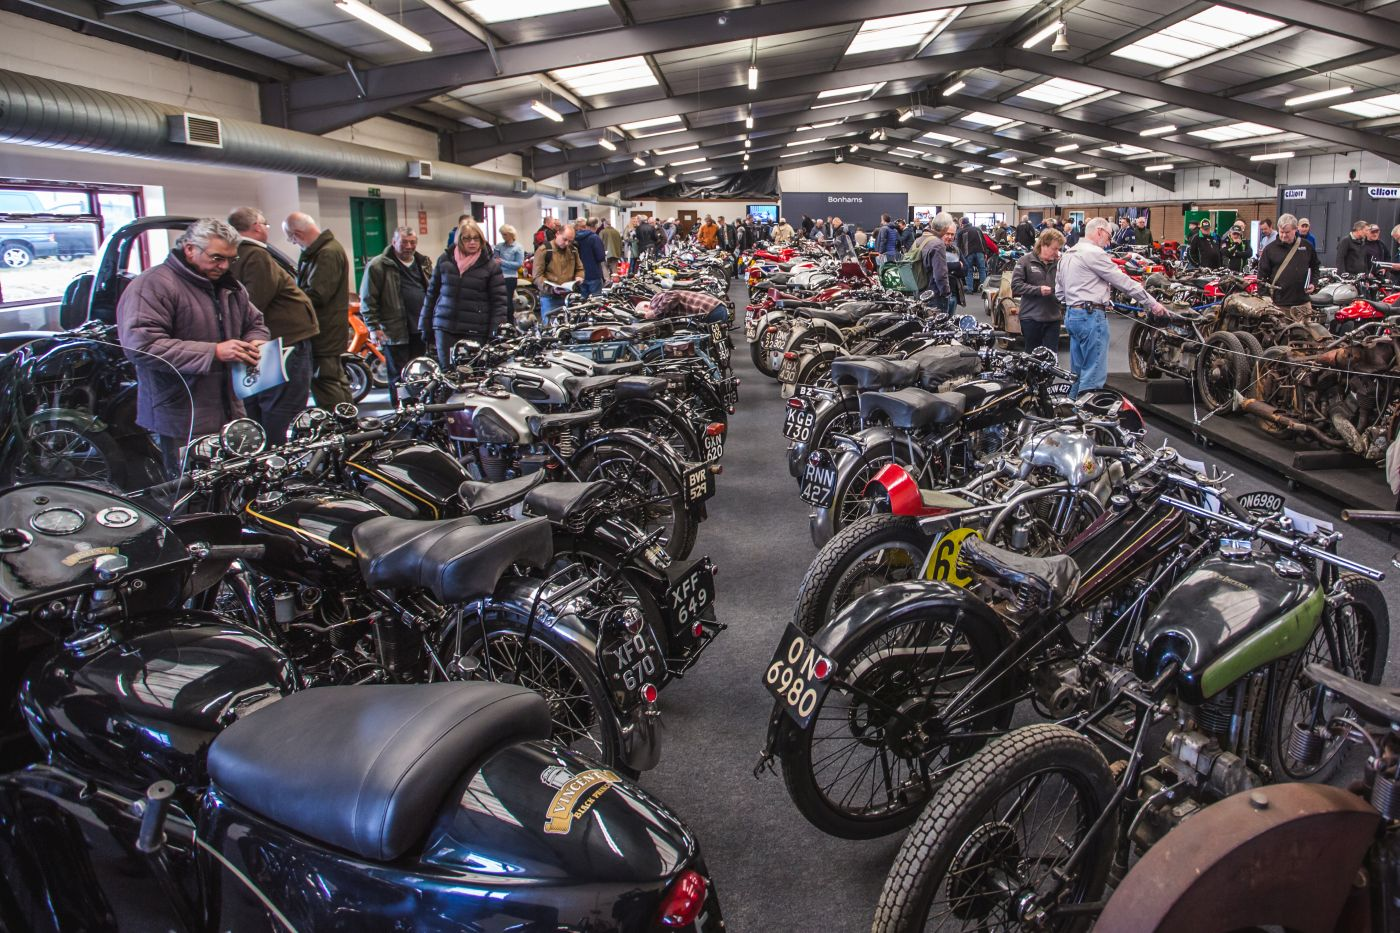 Motorcycle Auction Sites Uk